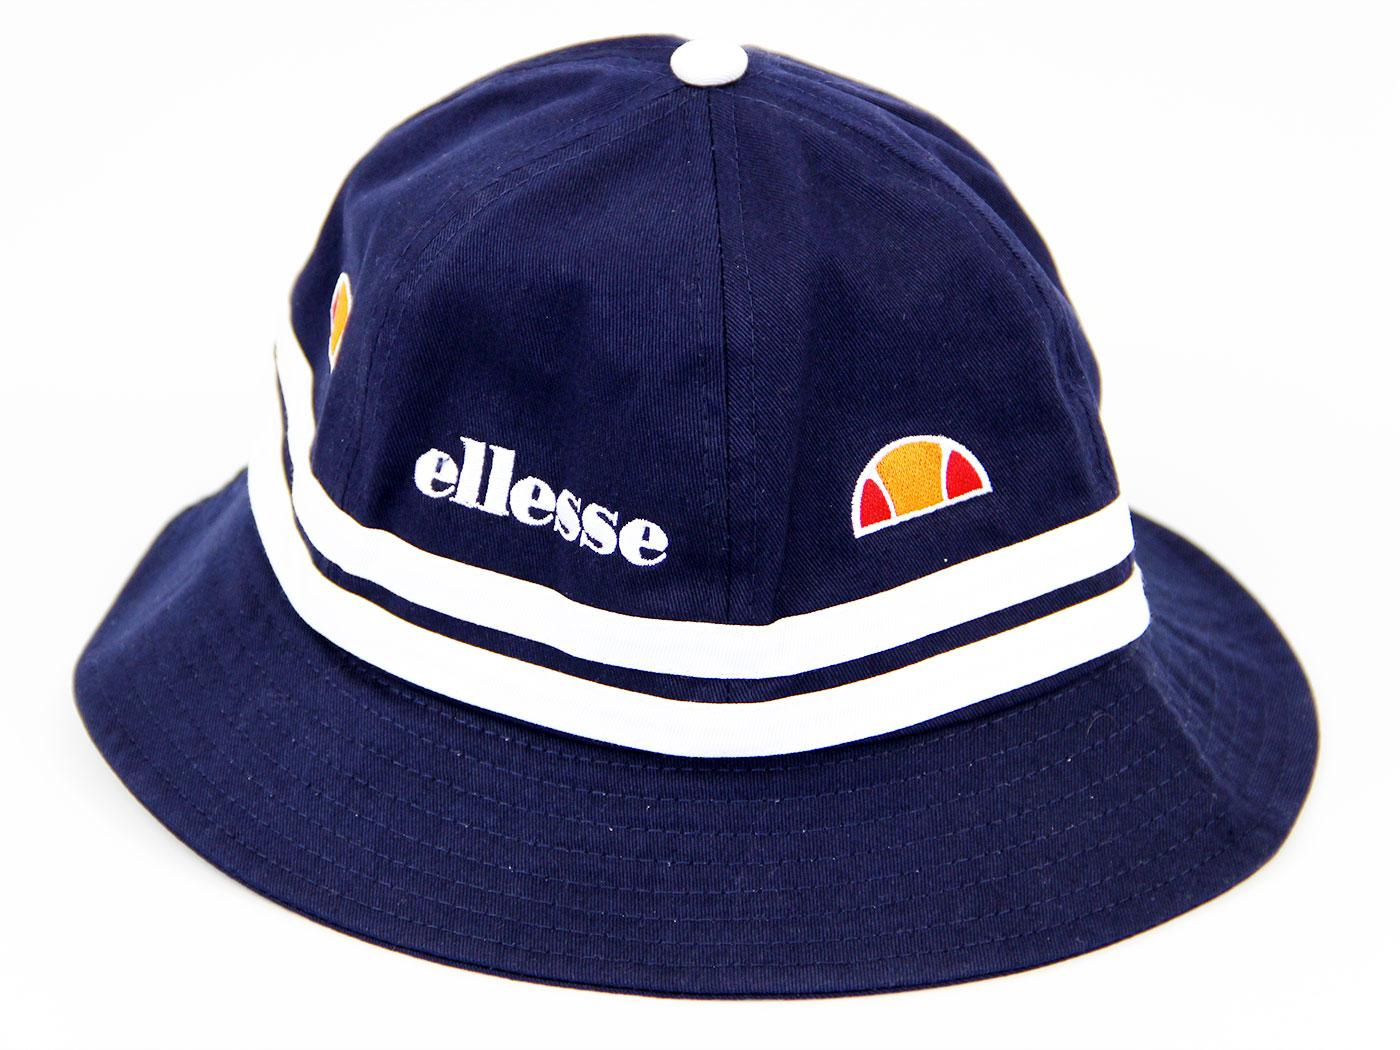 Ellesse Retro Indie Nineties Britop Bucket Hat in Navy 6c6bfef28b2